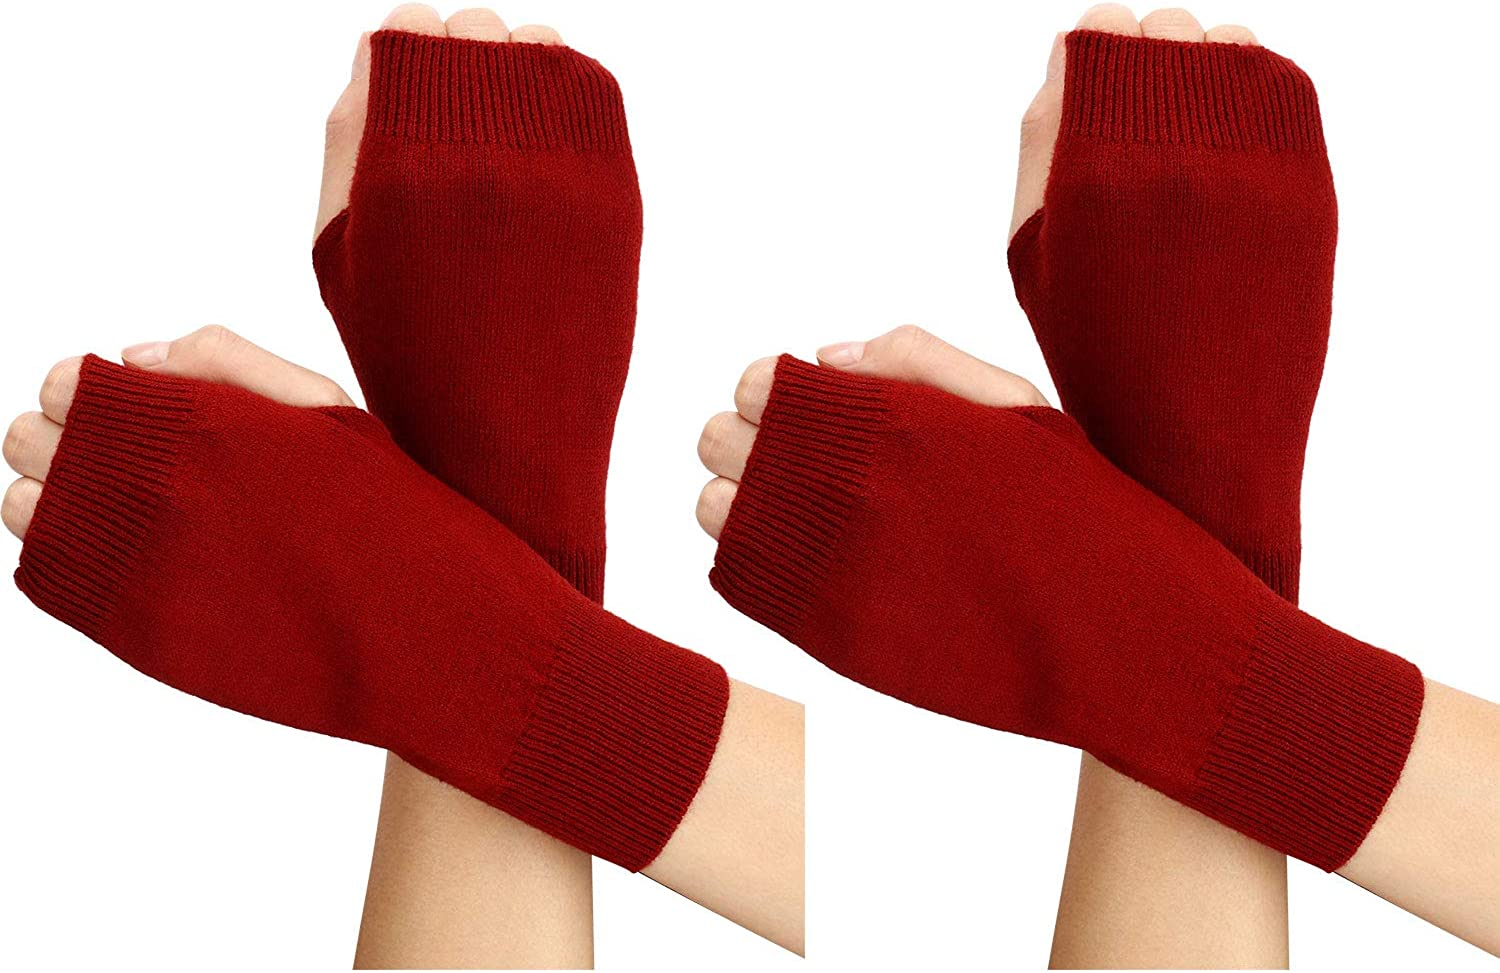 2 Pairs Cashmere Fingerless Gloves Half Thumb Hole Fingerless Knit Warm Mittens for Women